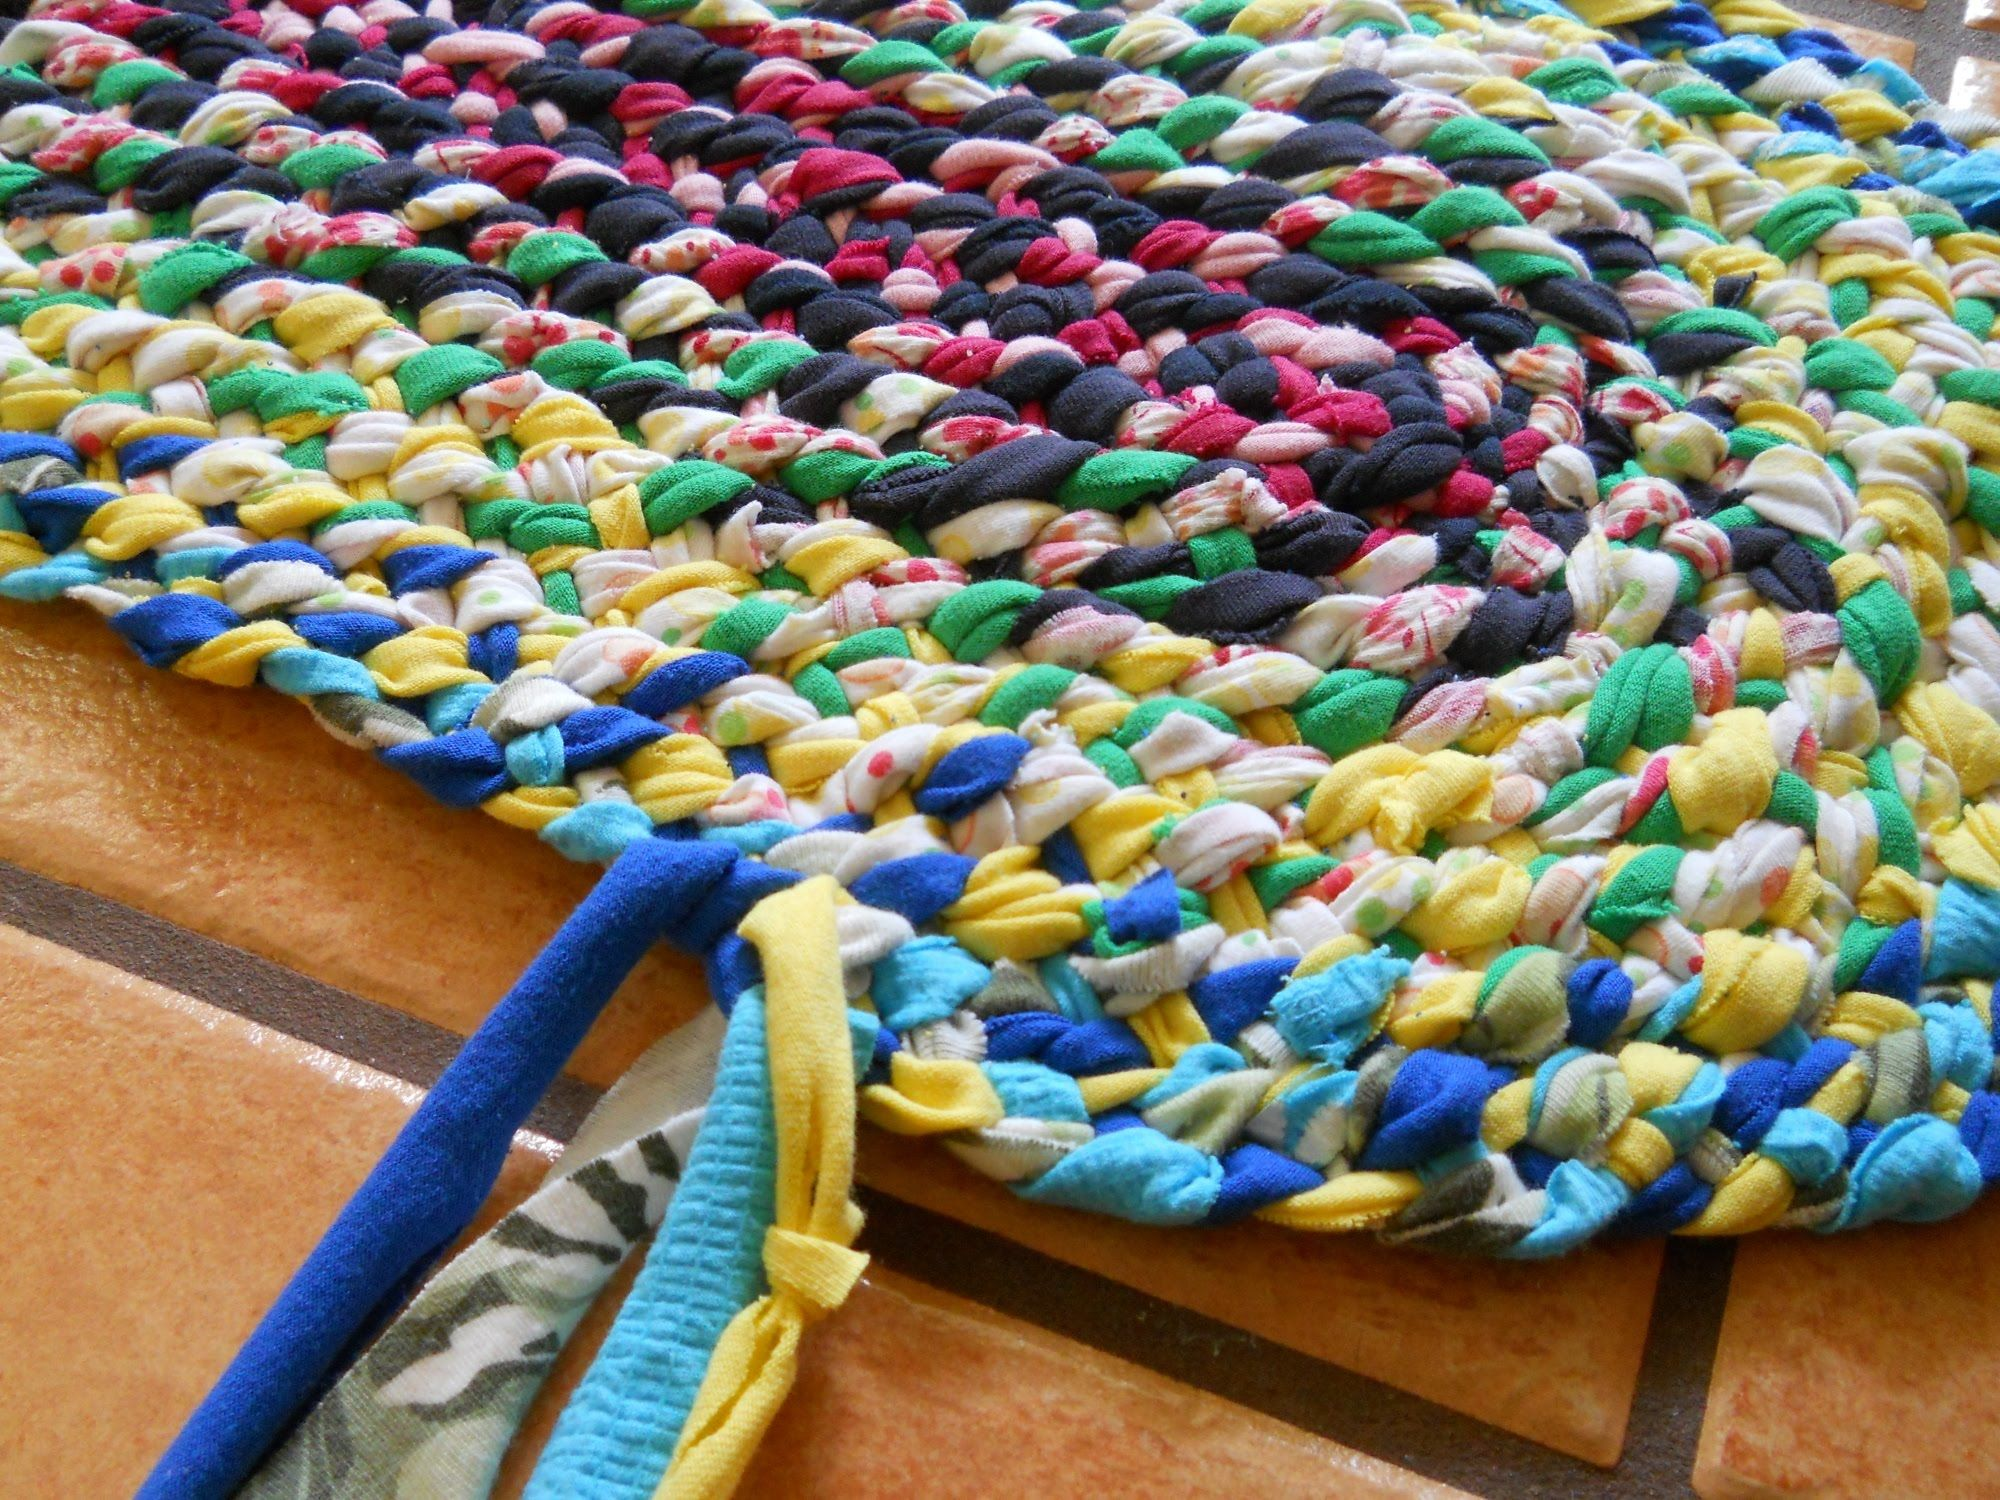 Lost Art Of Braid In Rag Rugs Part 3 Adding The 4th Strand